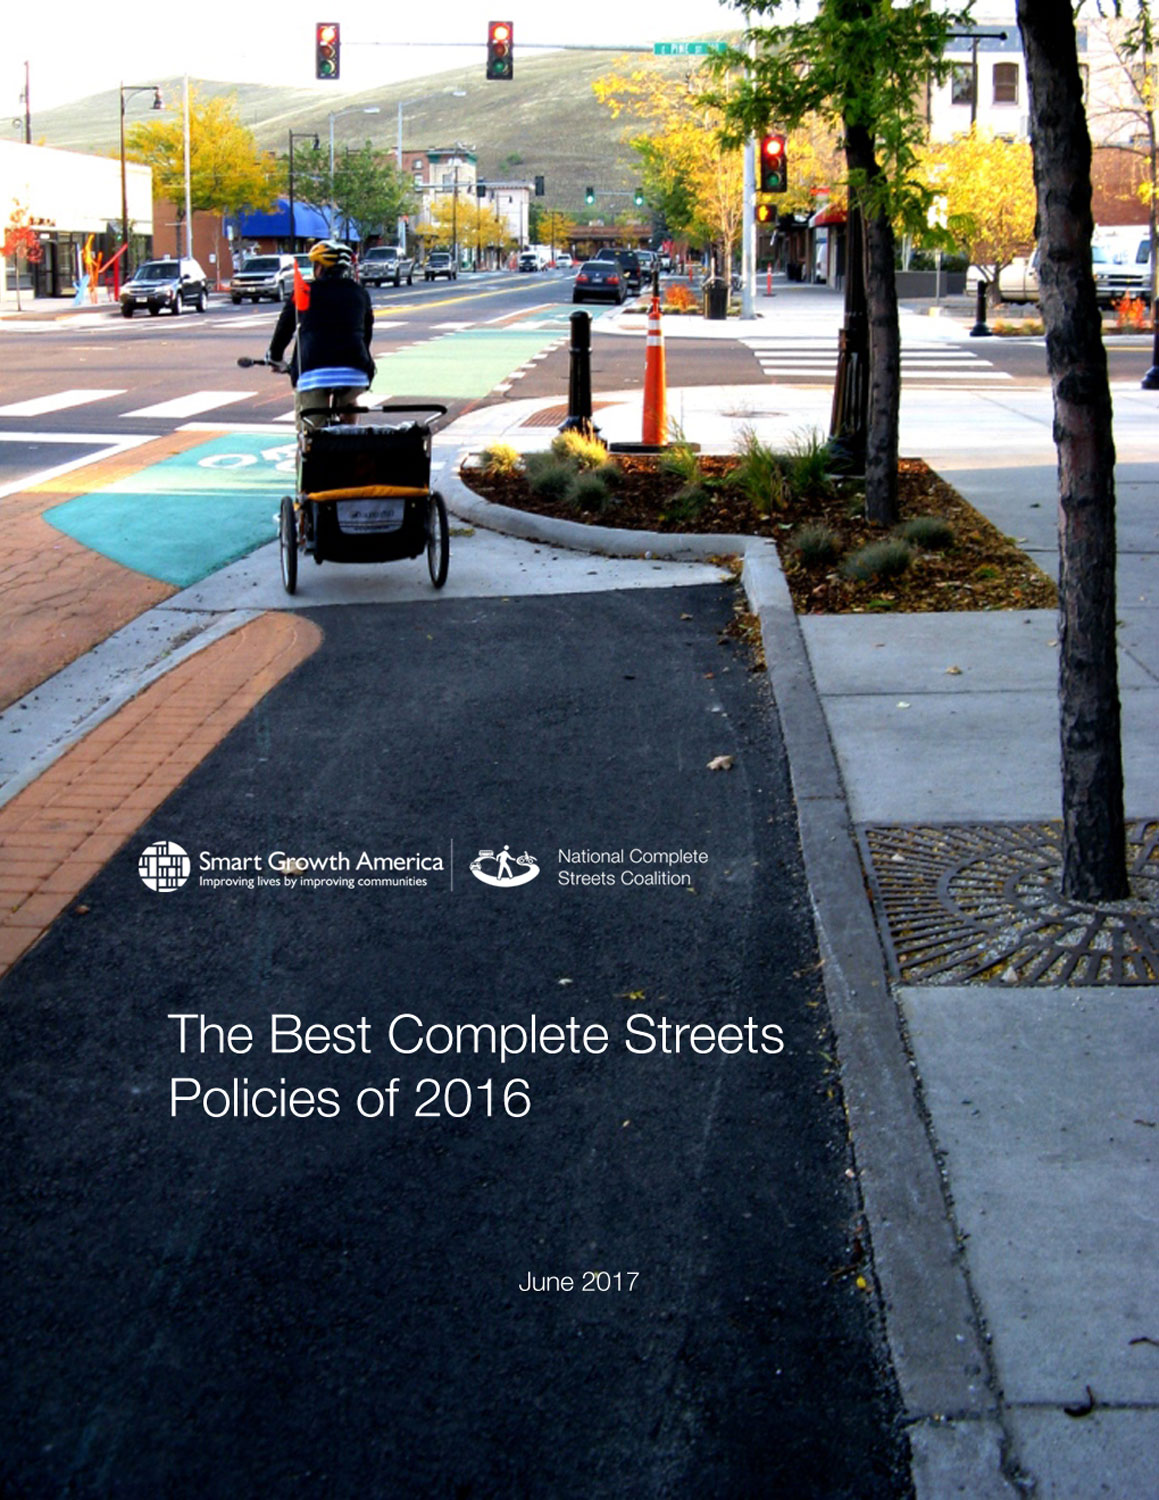 The Best Complete Streets Policies of 2016